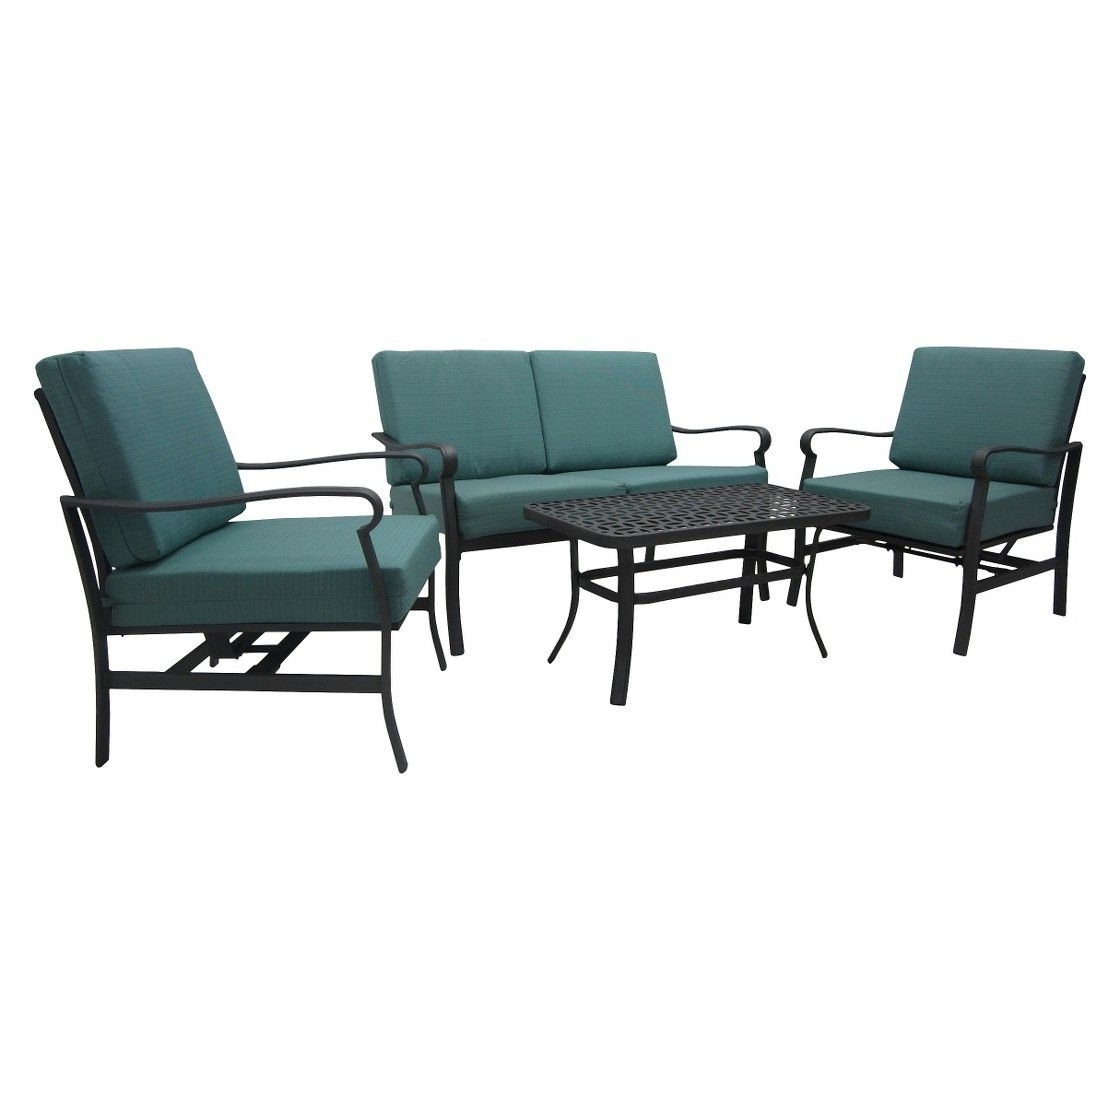 Well Known Patio Conversation Sets At Target Regarding Threshold Hawthorne 4 Piece Metal Patio Conversation Furniture Set (View 17 of 20)